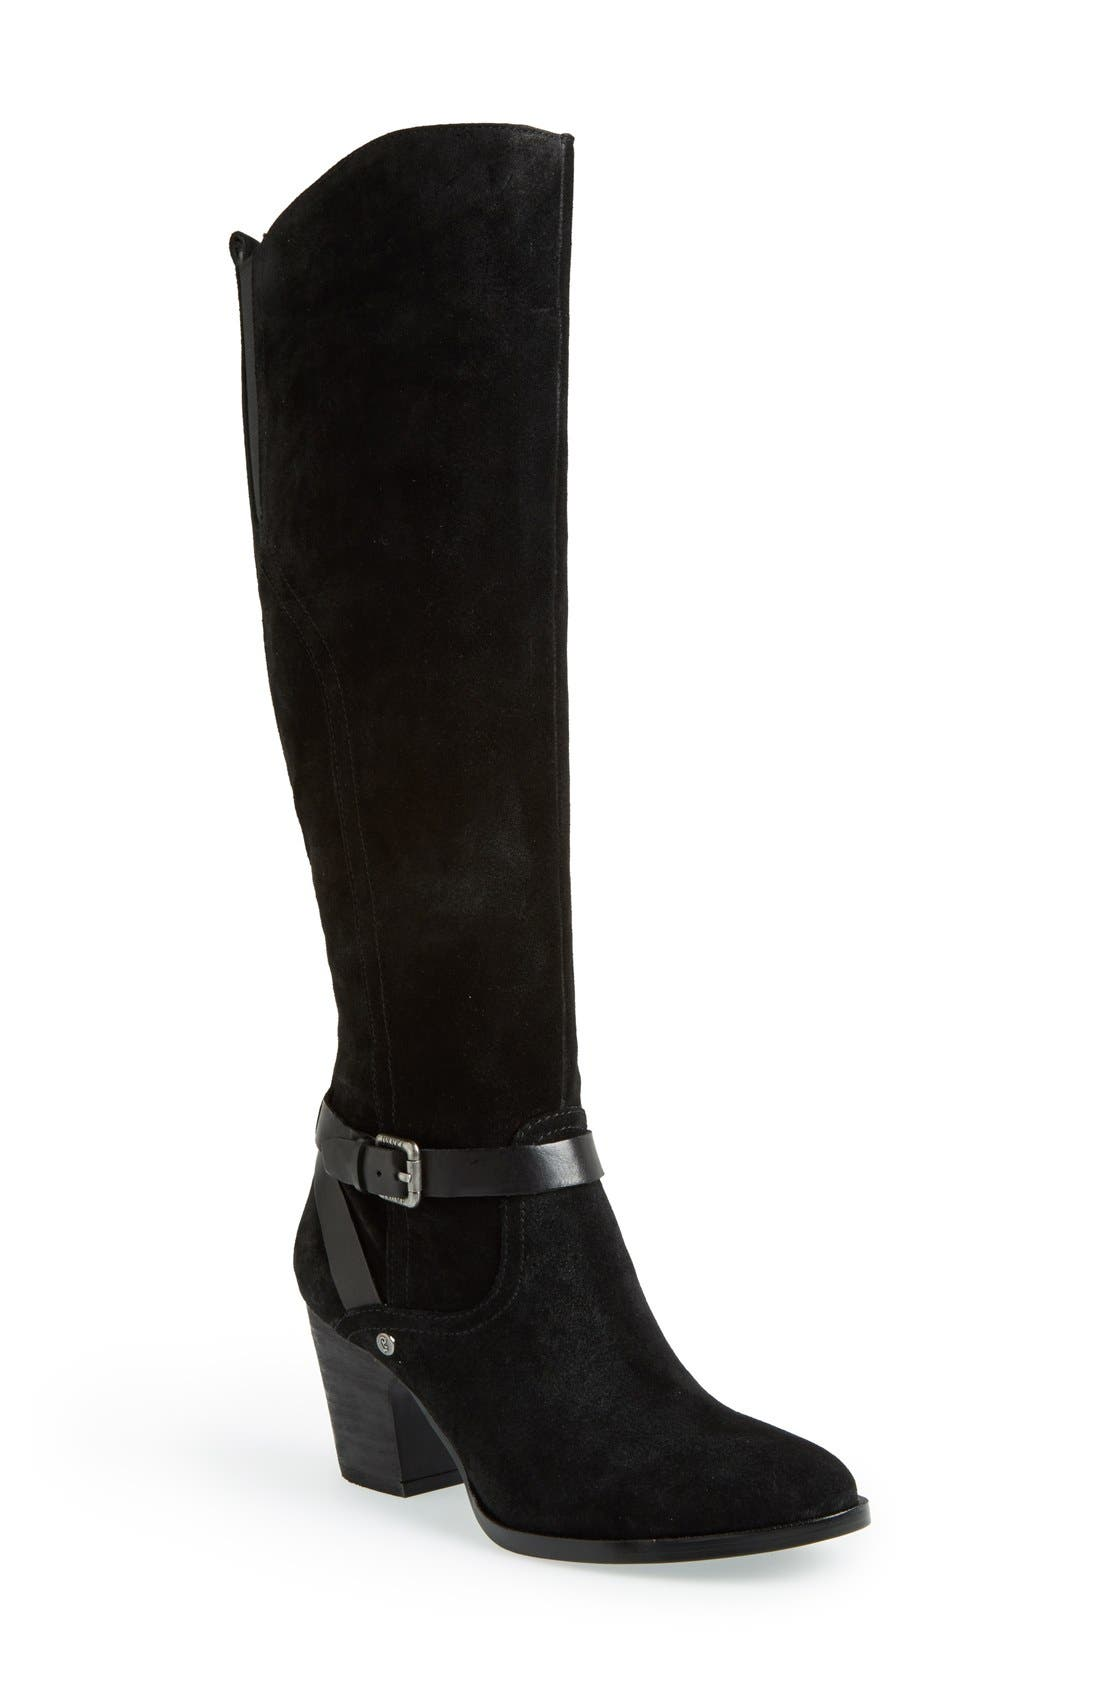 Main Image - Ivanka Trump 'Tarrilyn' Knee High Suede Boot (Women)